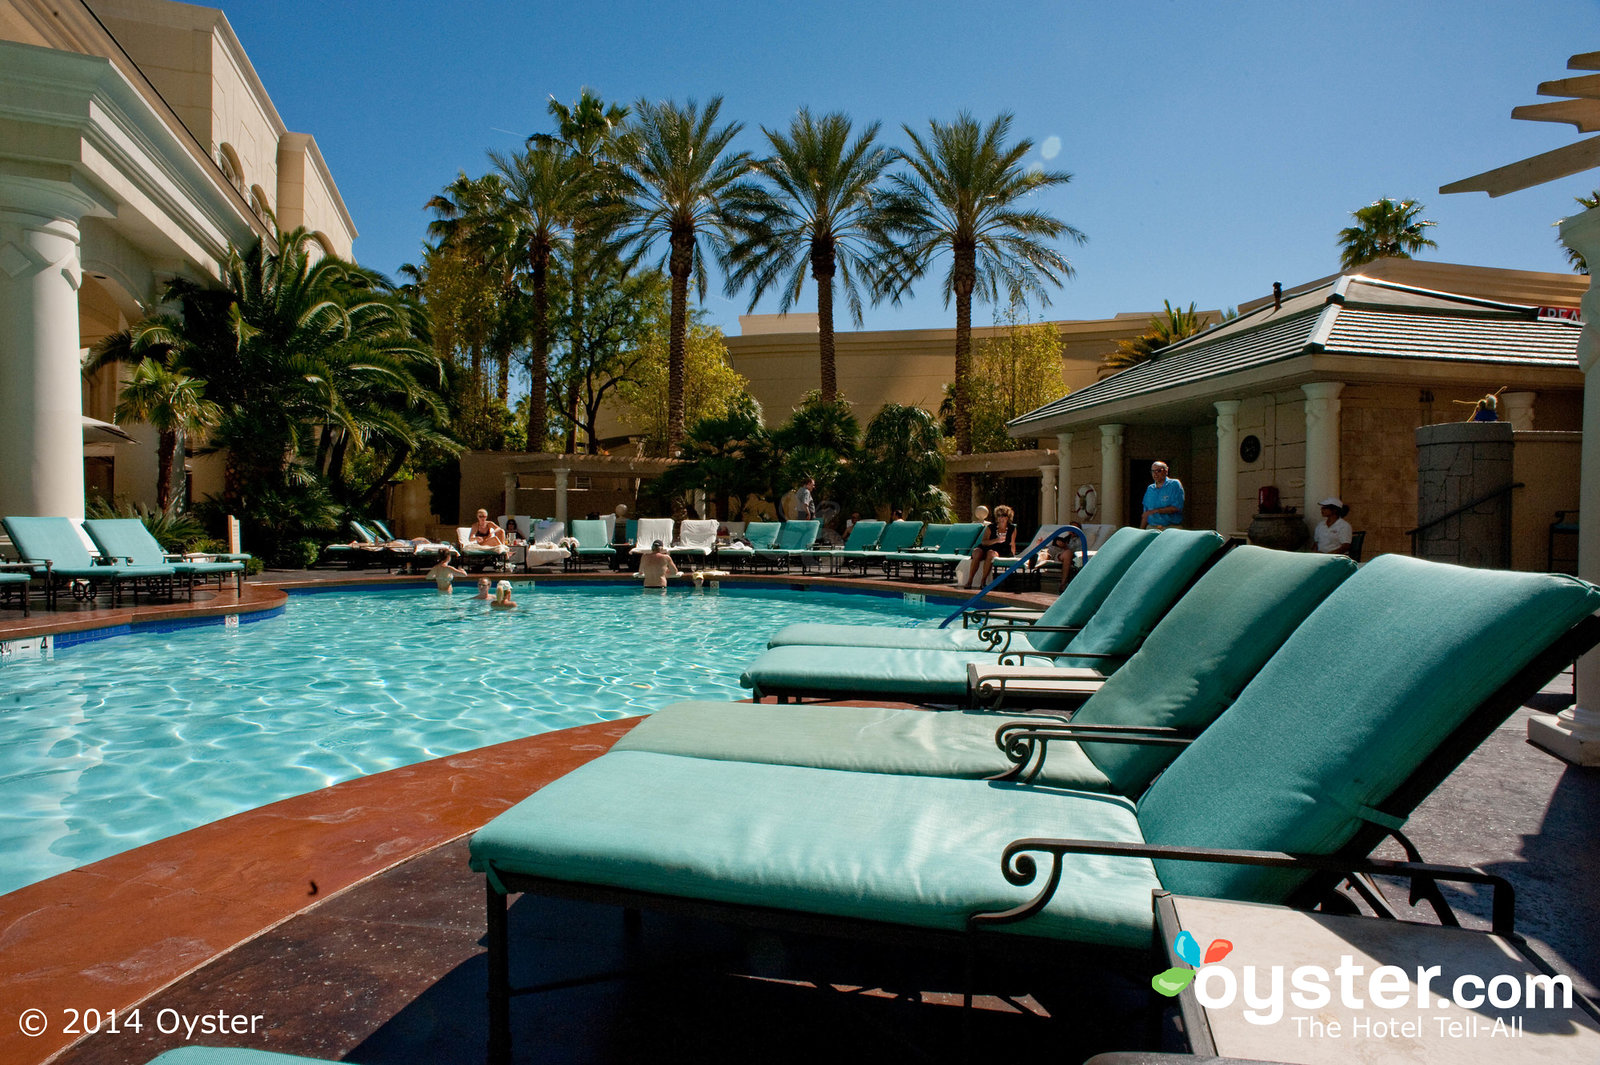 outdoor-pool-four-seasons-hotel-las-vegas-v140256-1600.jpg